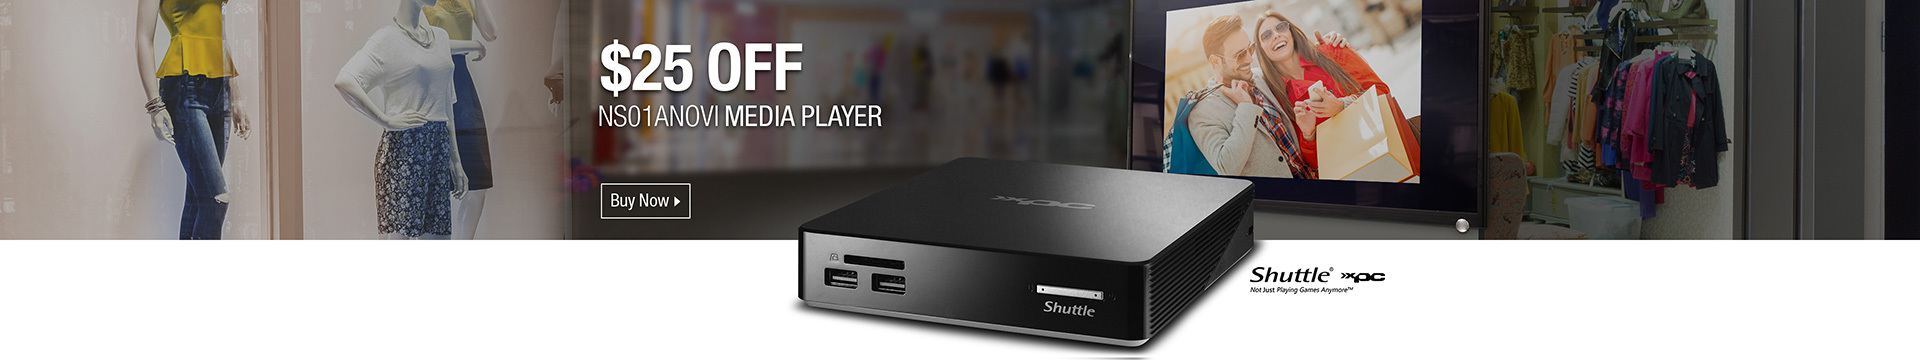 $25 OFF NS01ANOVI MEDIA PLAYER